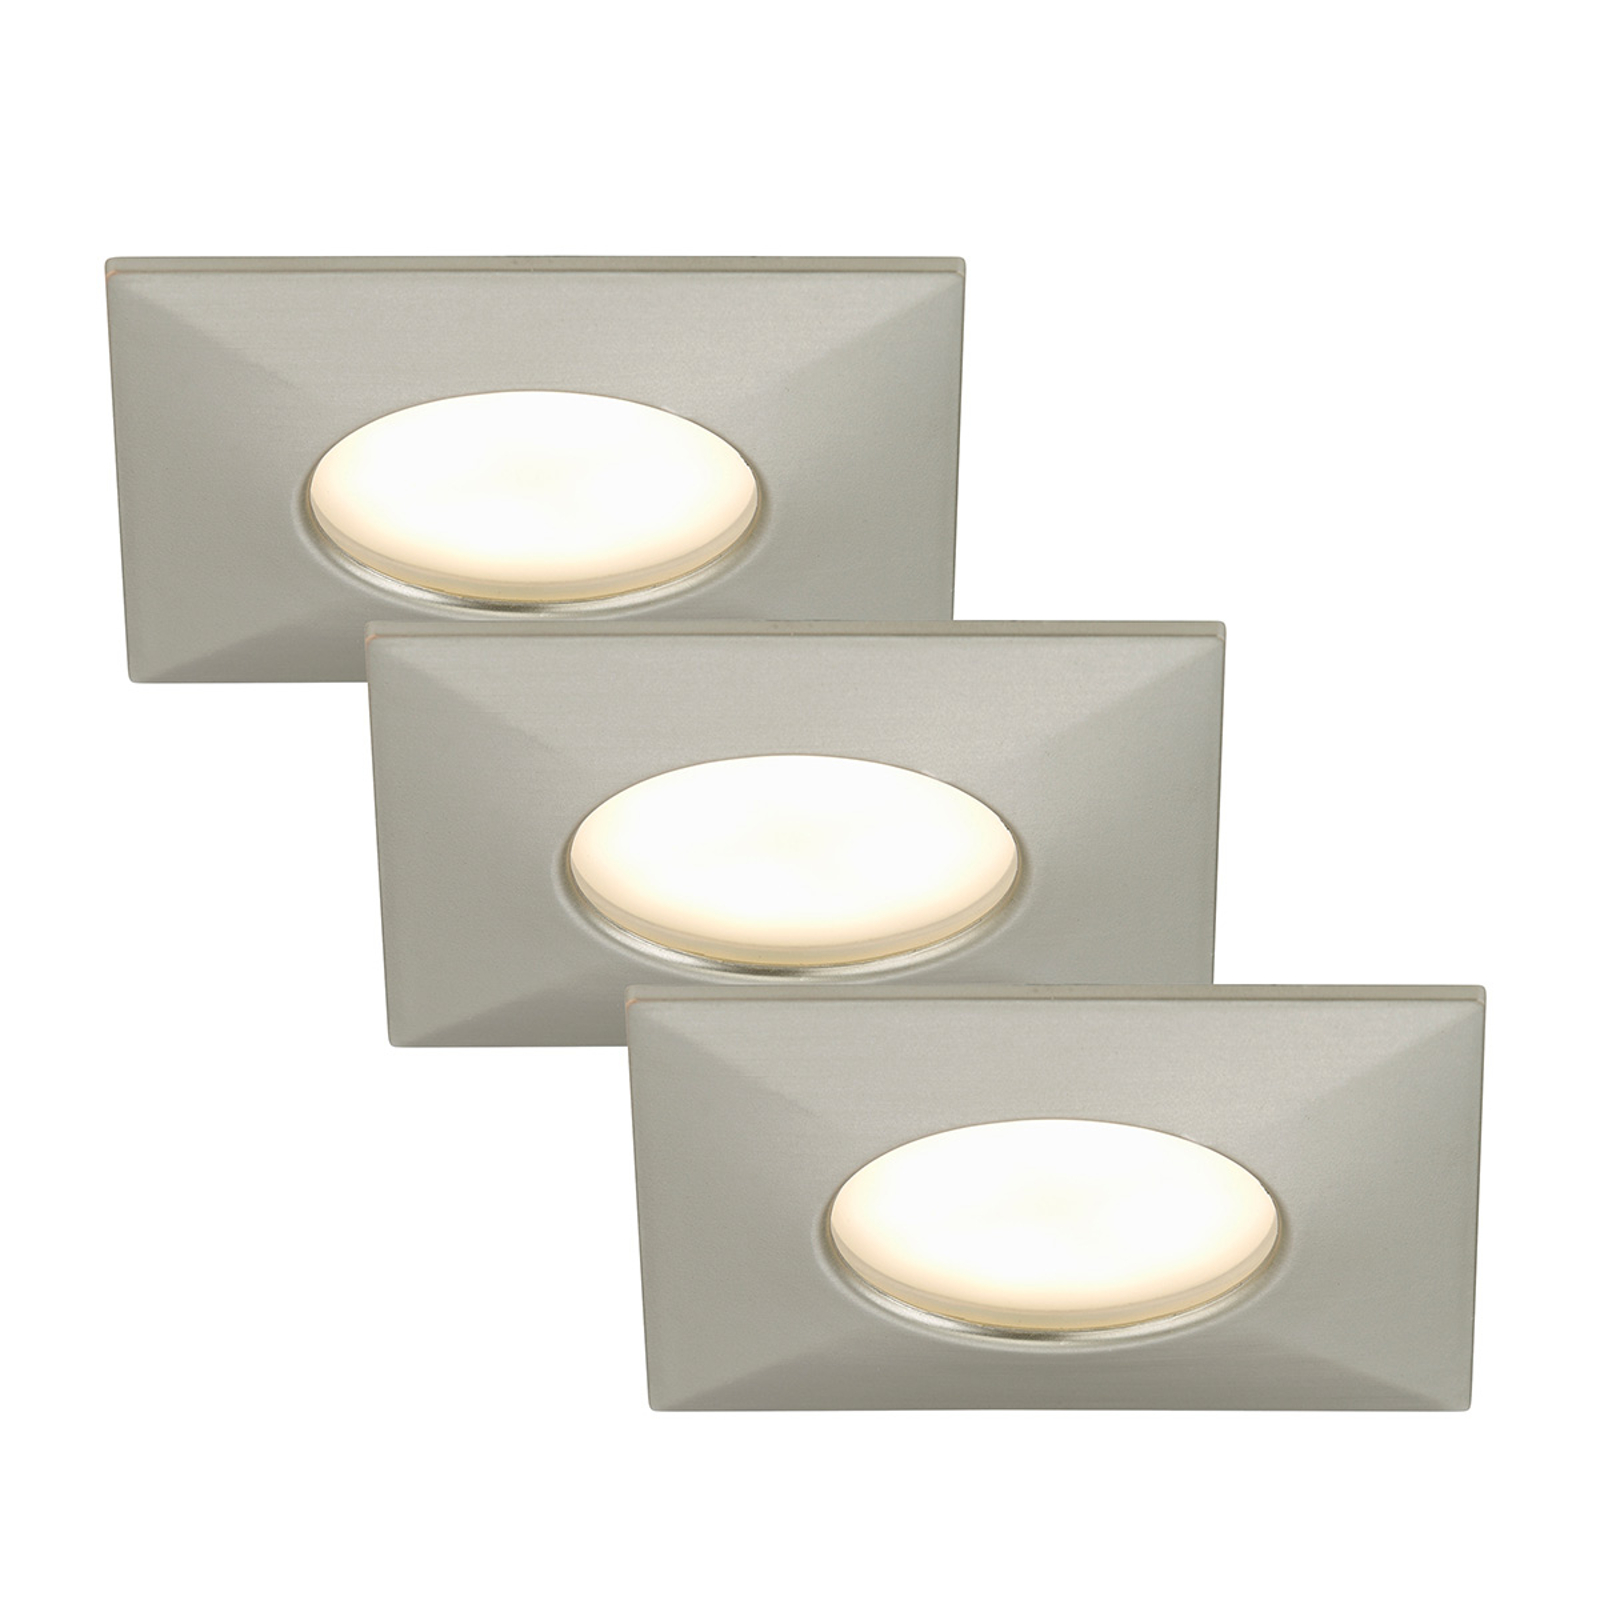 LED-downlight Luca, 3-er-sett, IP44 nikkel matt